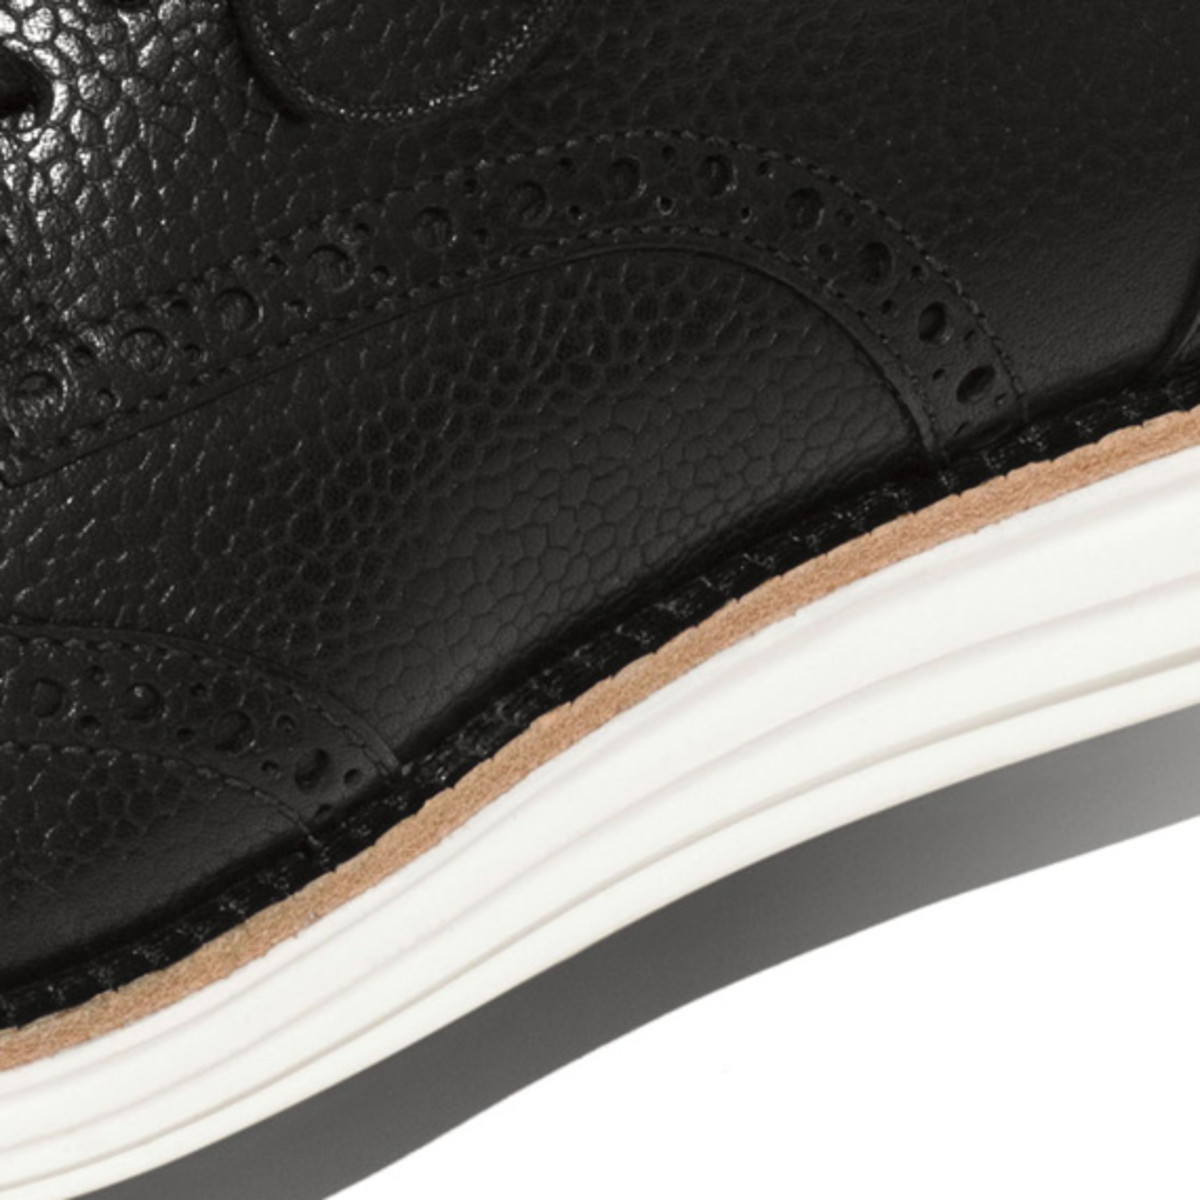 cole-haan-fragment-design-lunargrand-collection-002